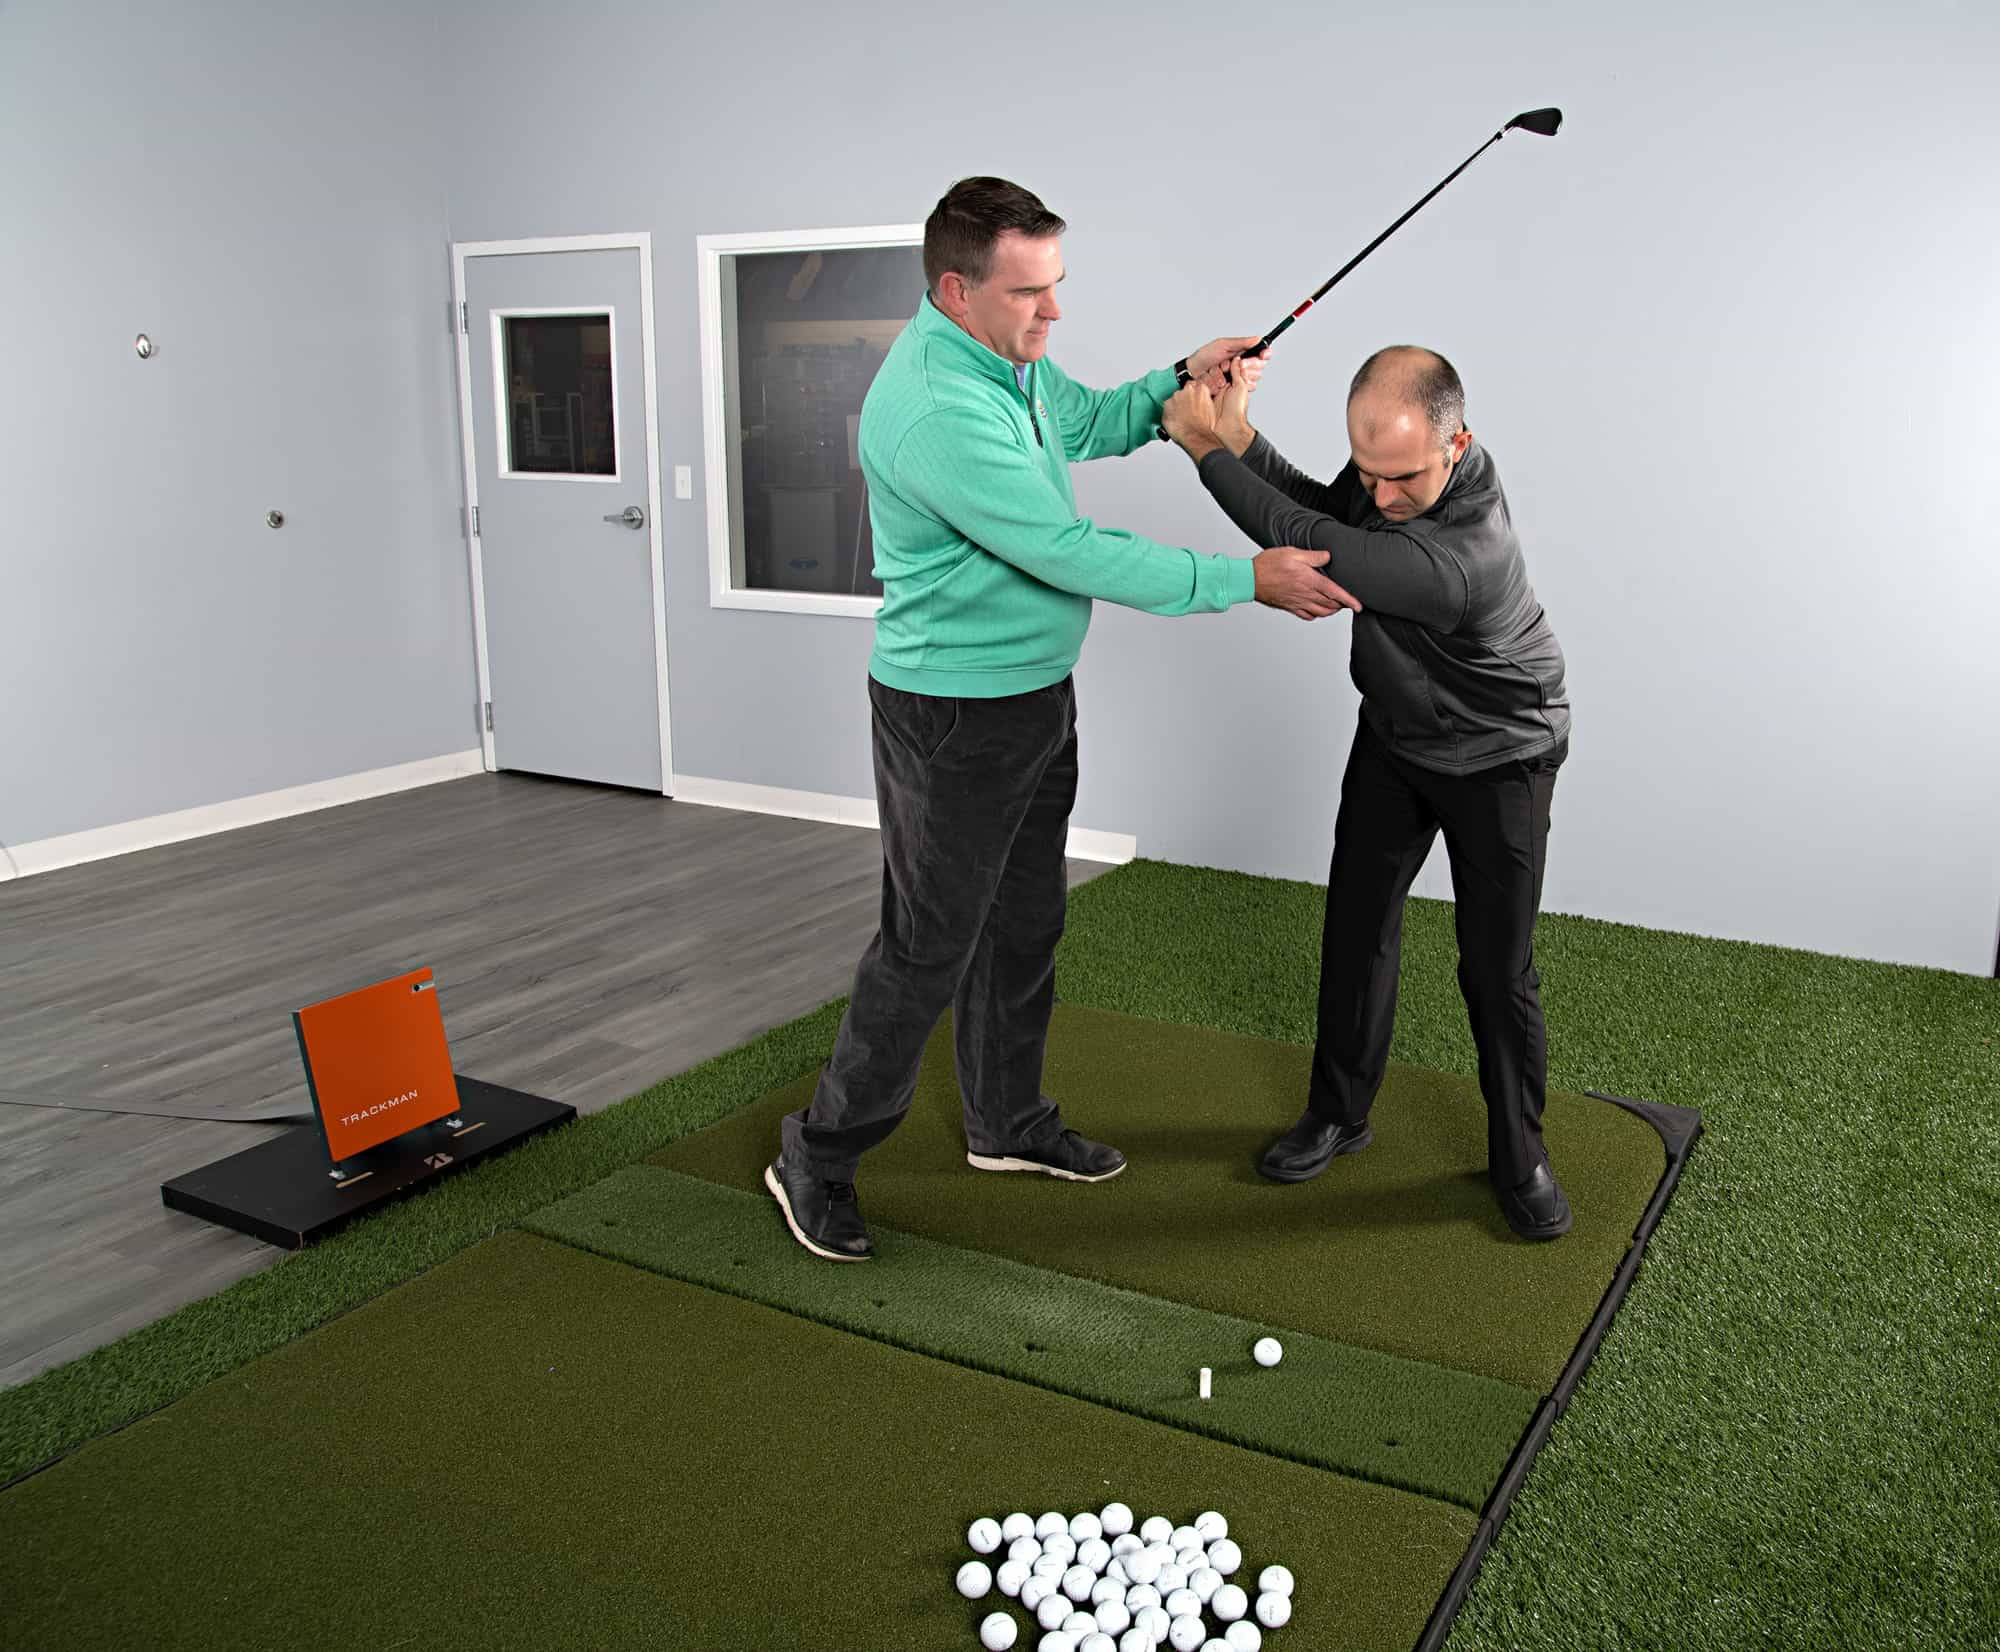 Golf Iron Swing Instruction - Instructor teaching a man